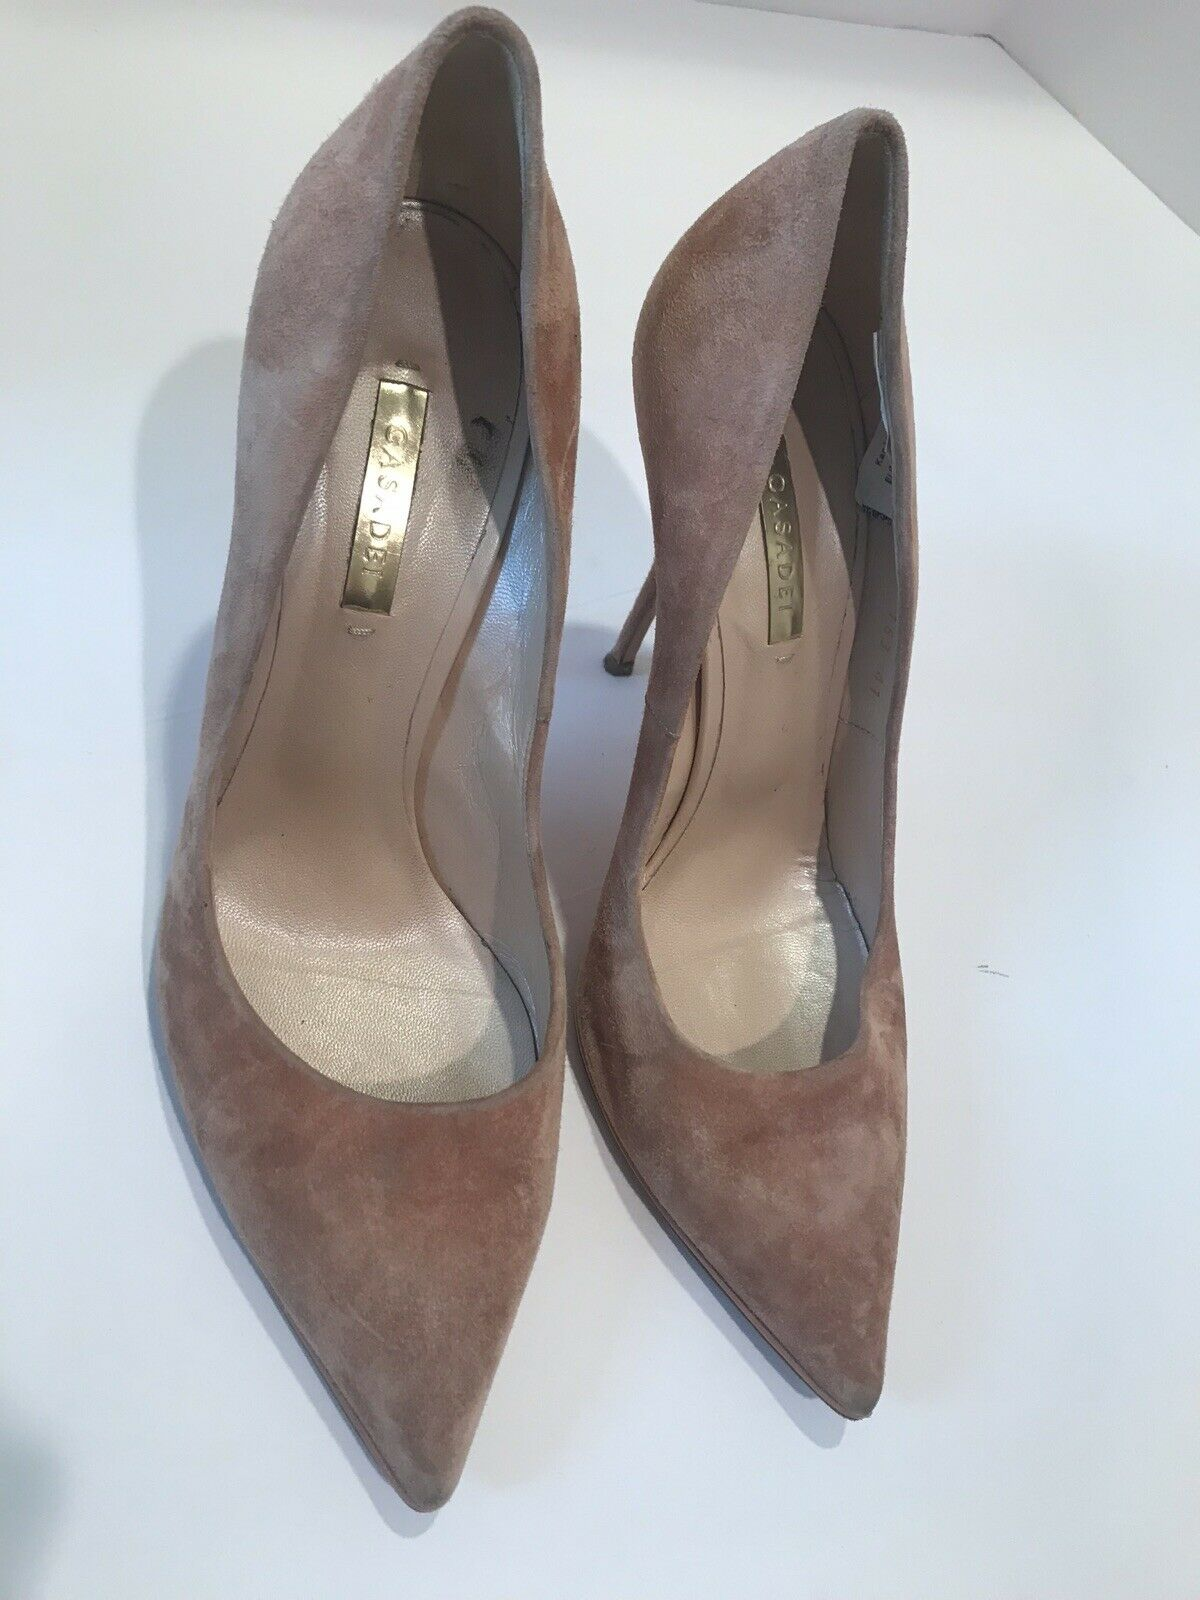 780 CASADEI 11 (10.5) High Heel Dusty Rosa Suede schuhe Pumps Pre-owned